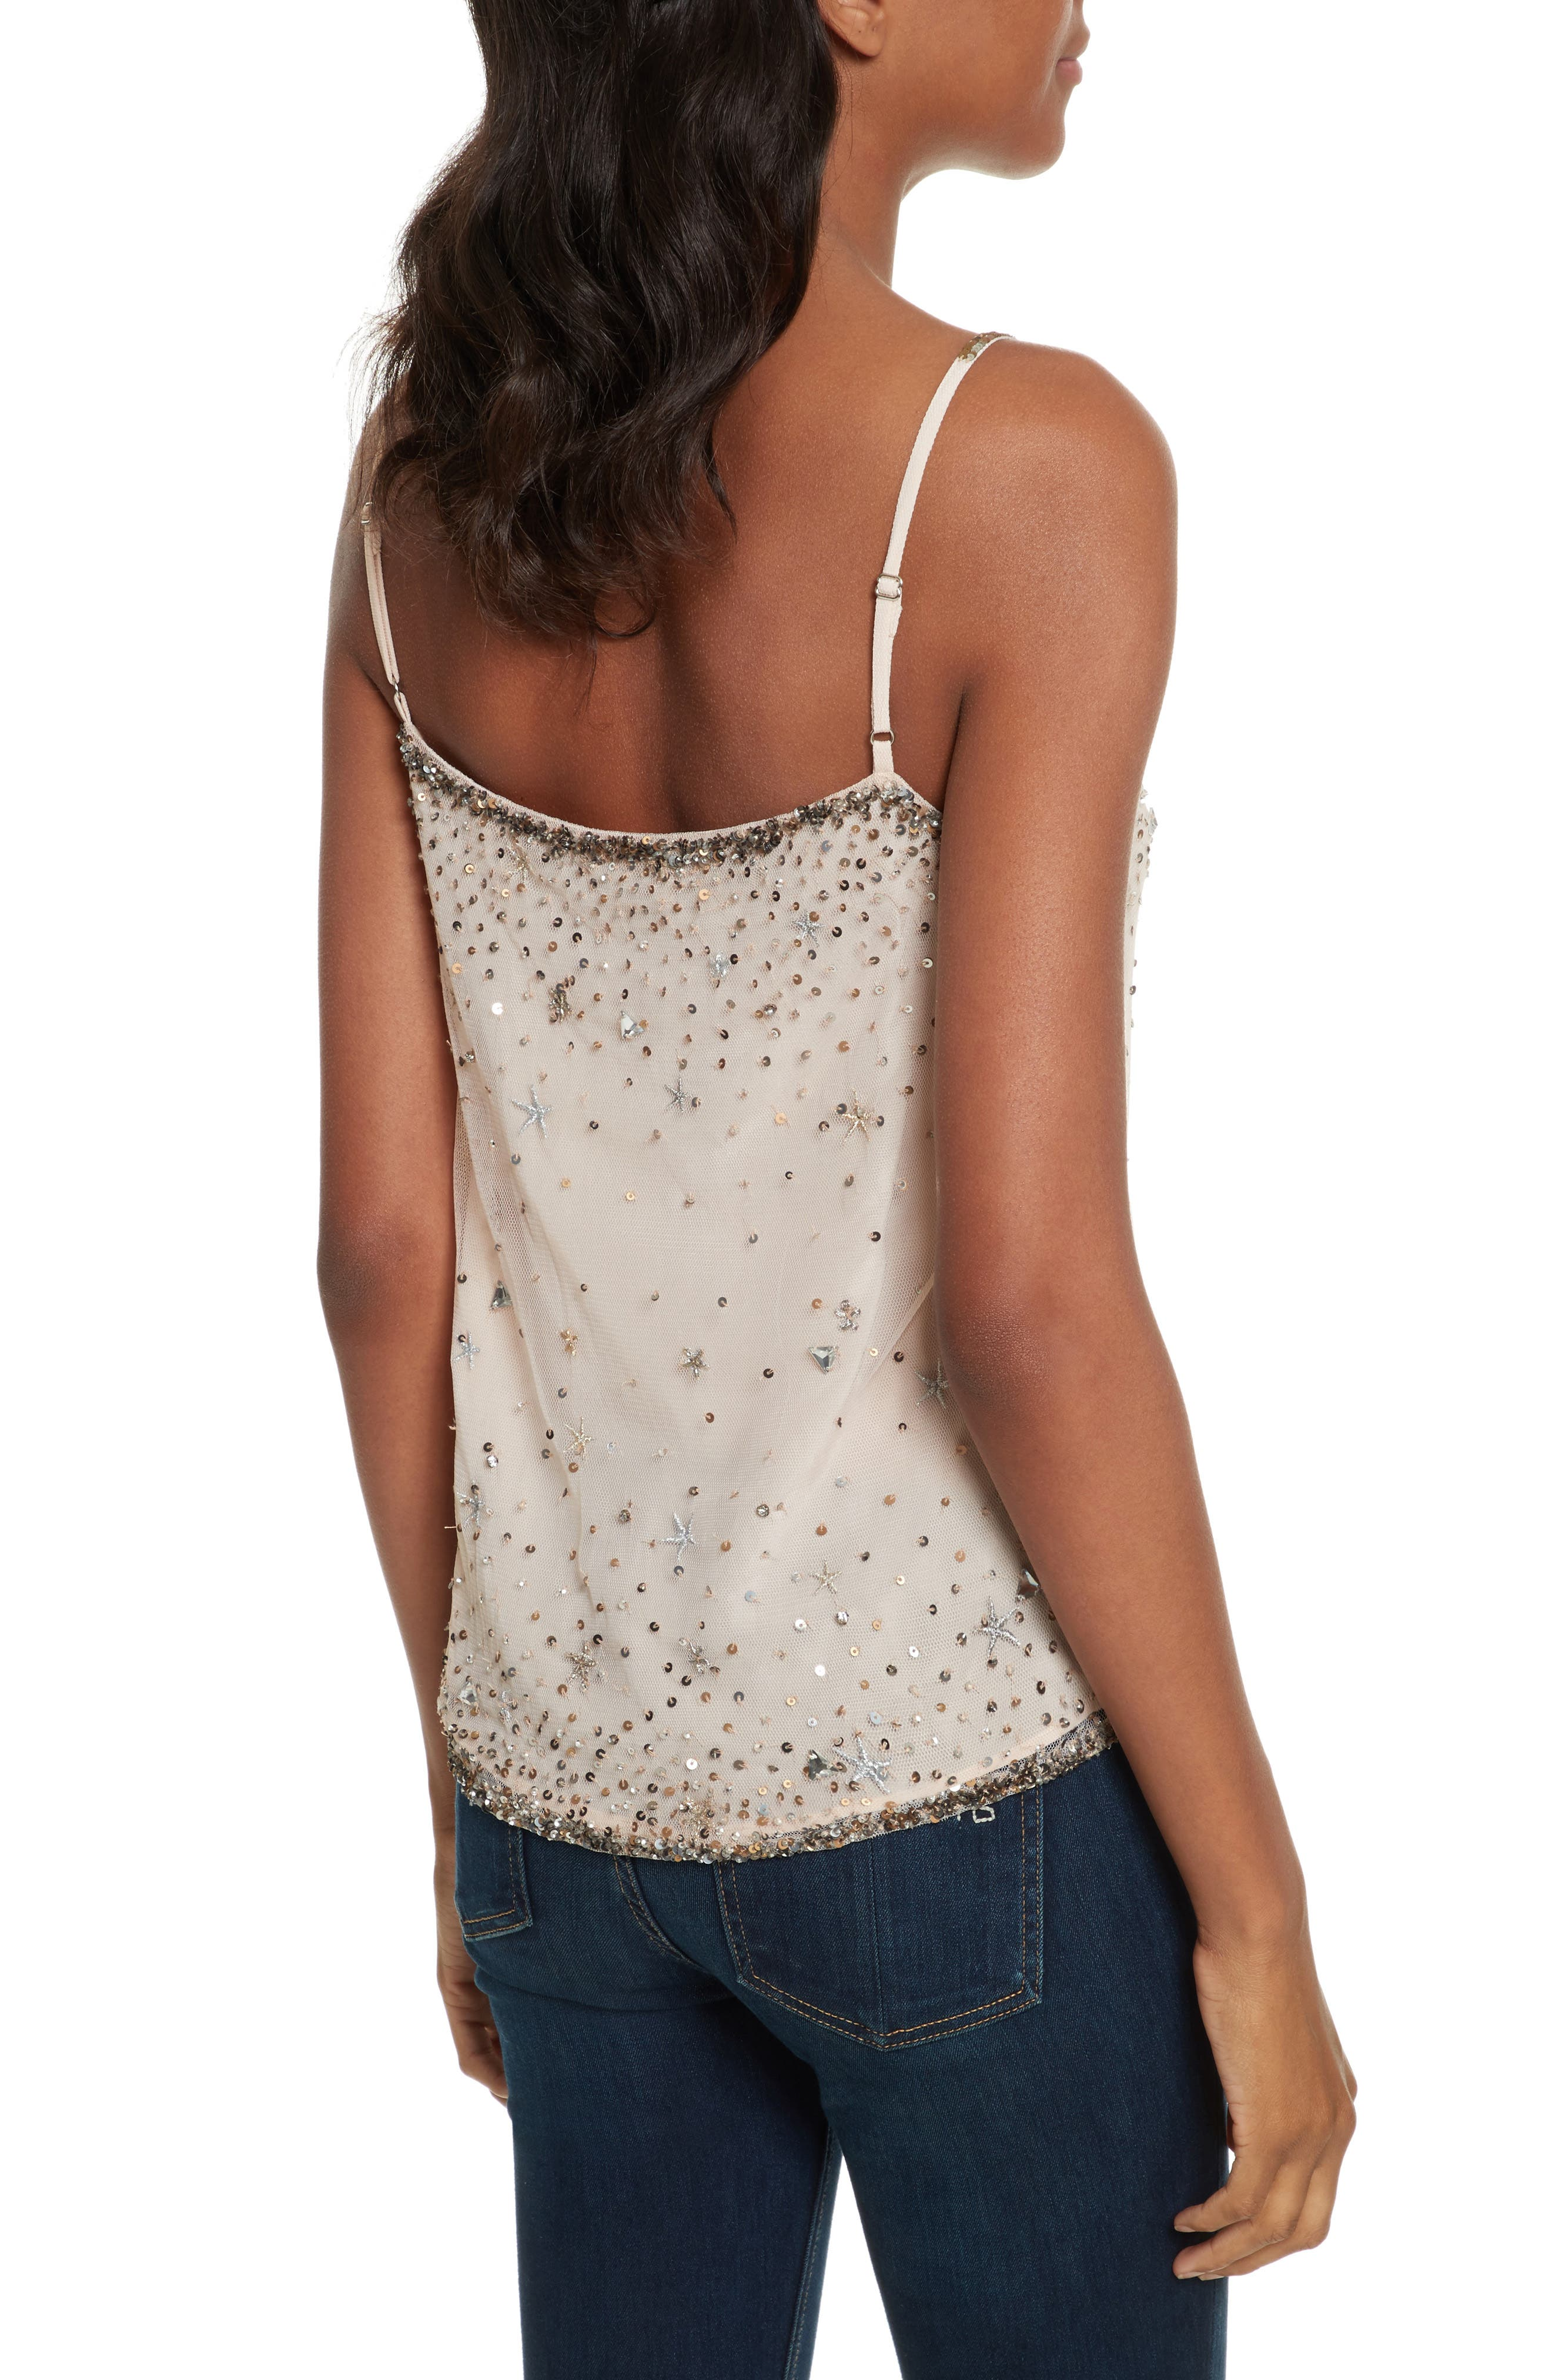 Garlen Beaded Camisole,                             Alternate thumbnail 2, color,                             Champagne